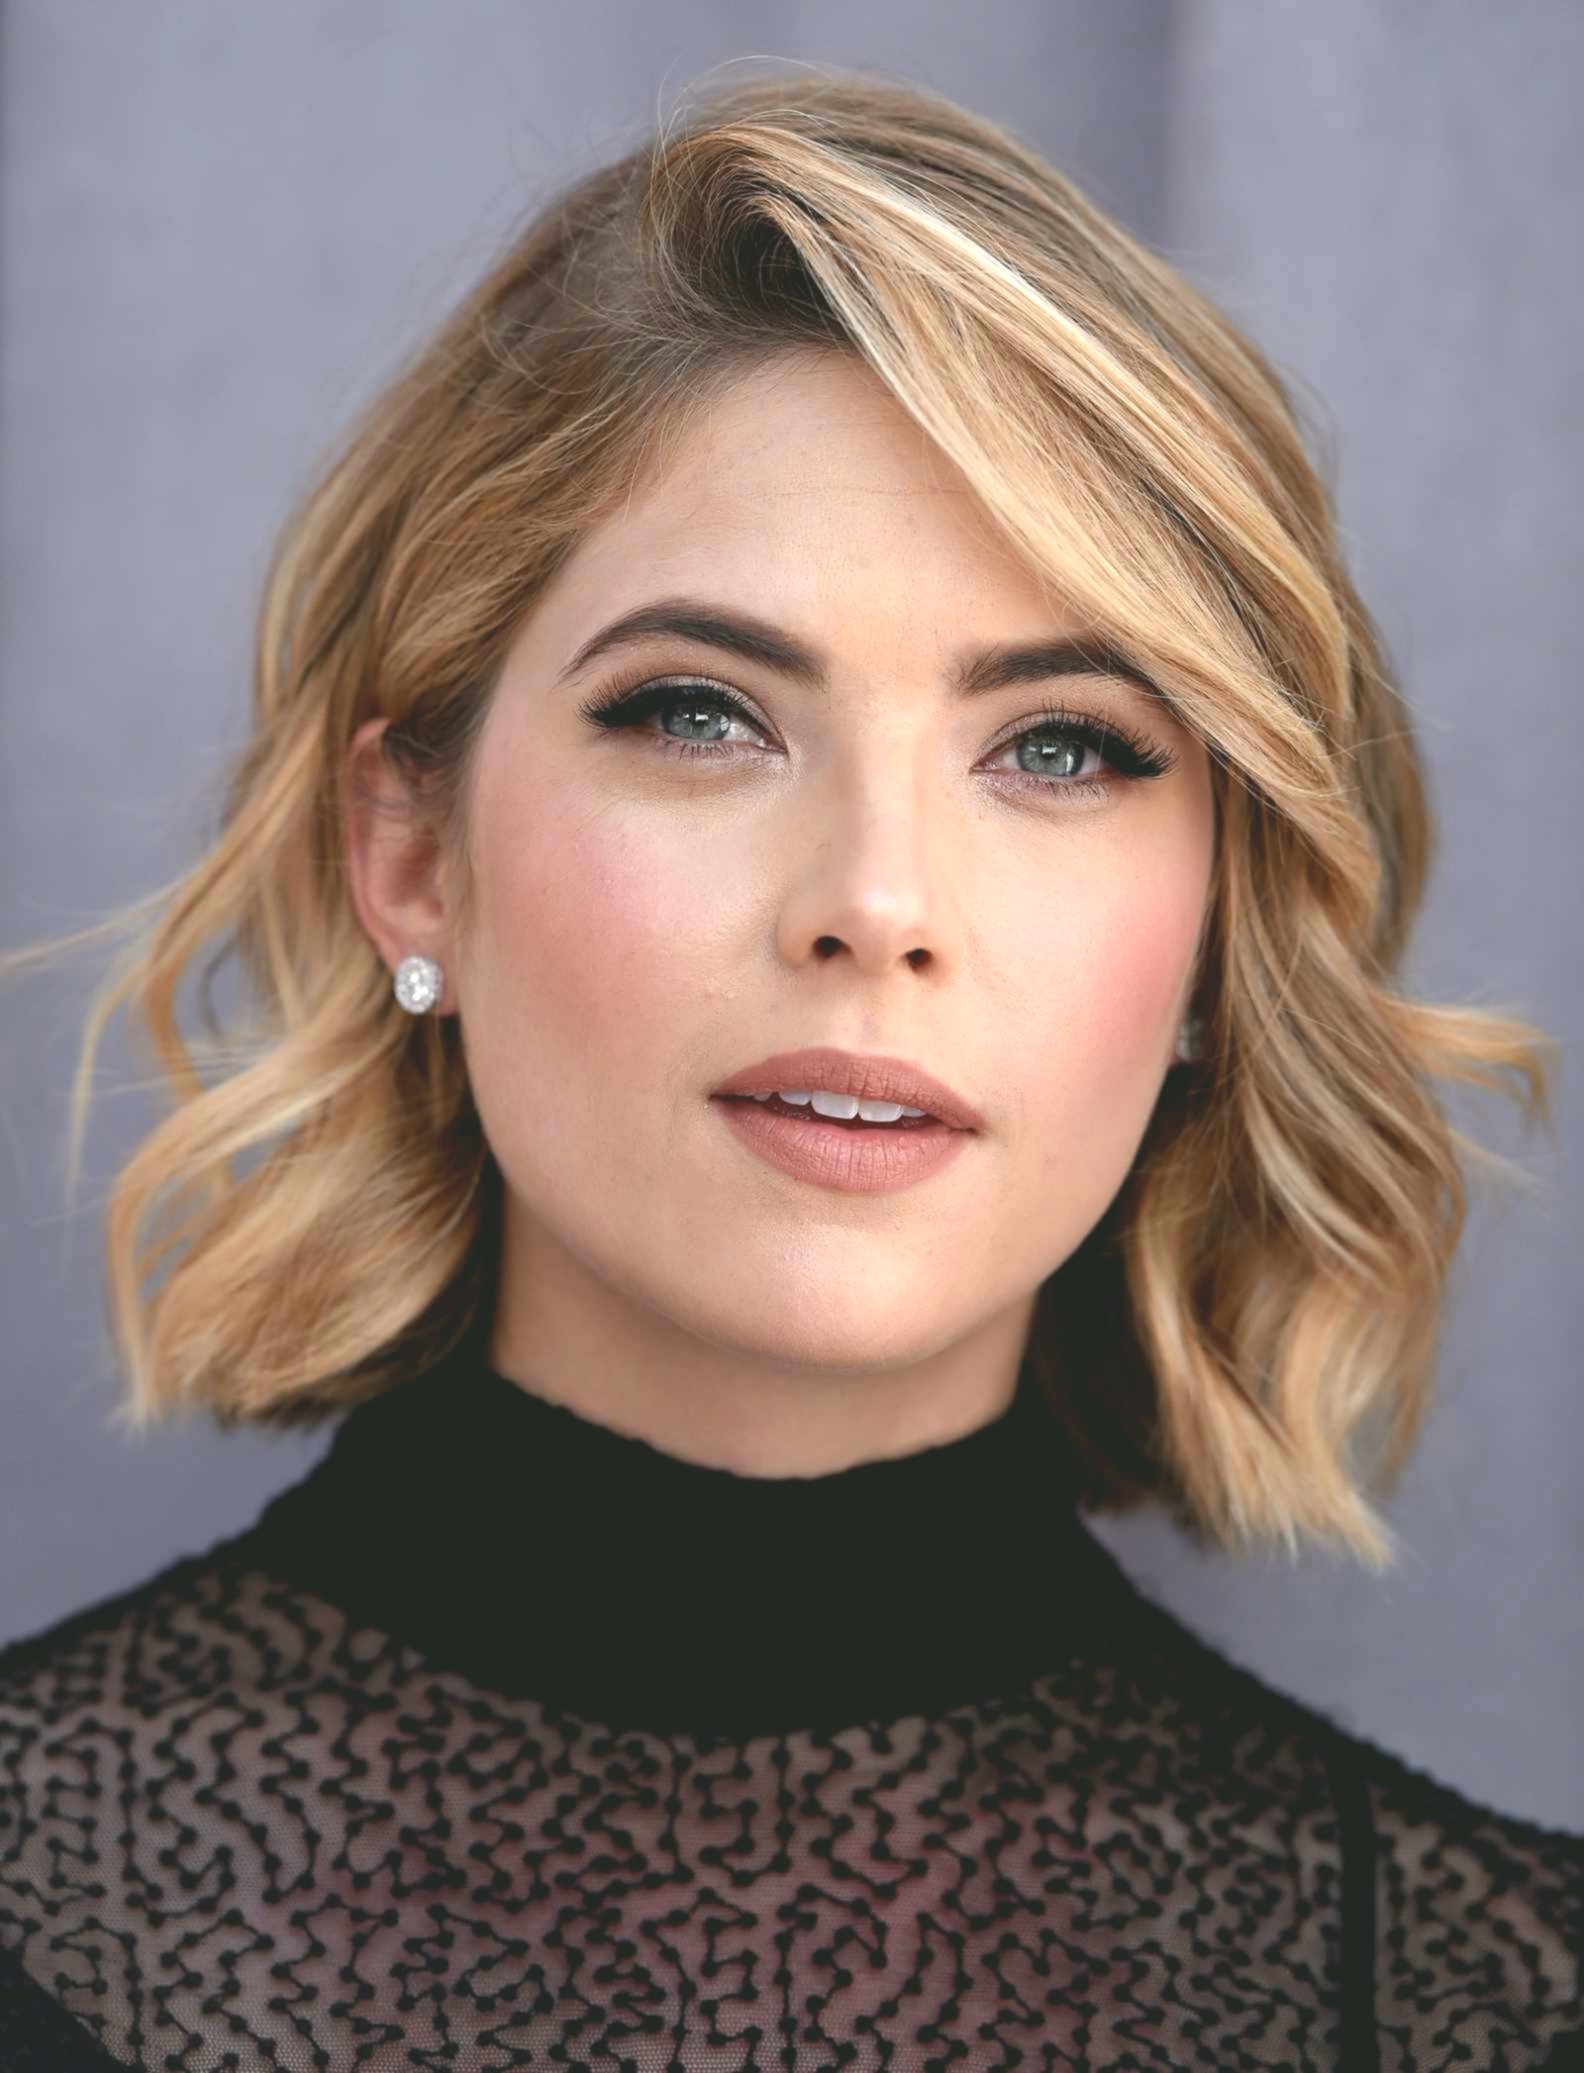 best hairstyles online charming Charming hairstyles photo